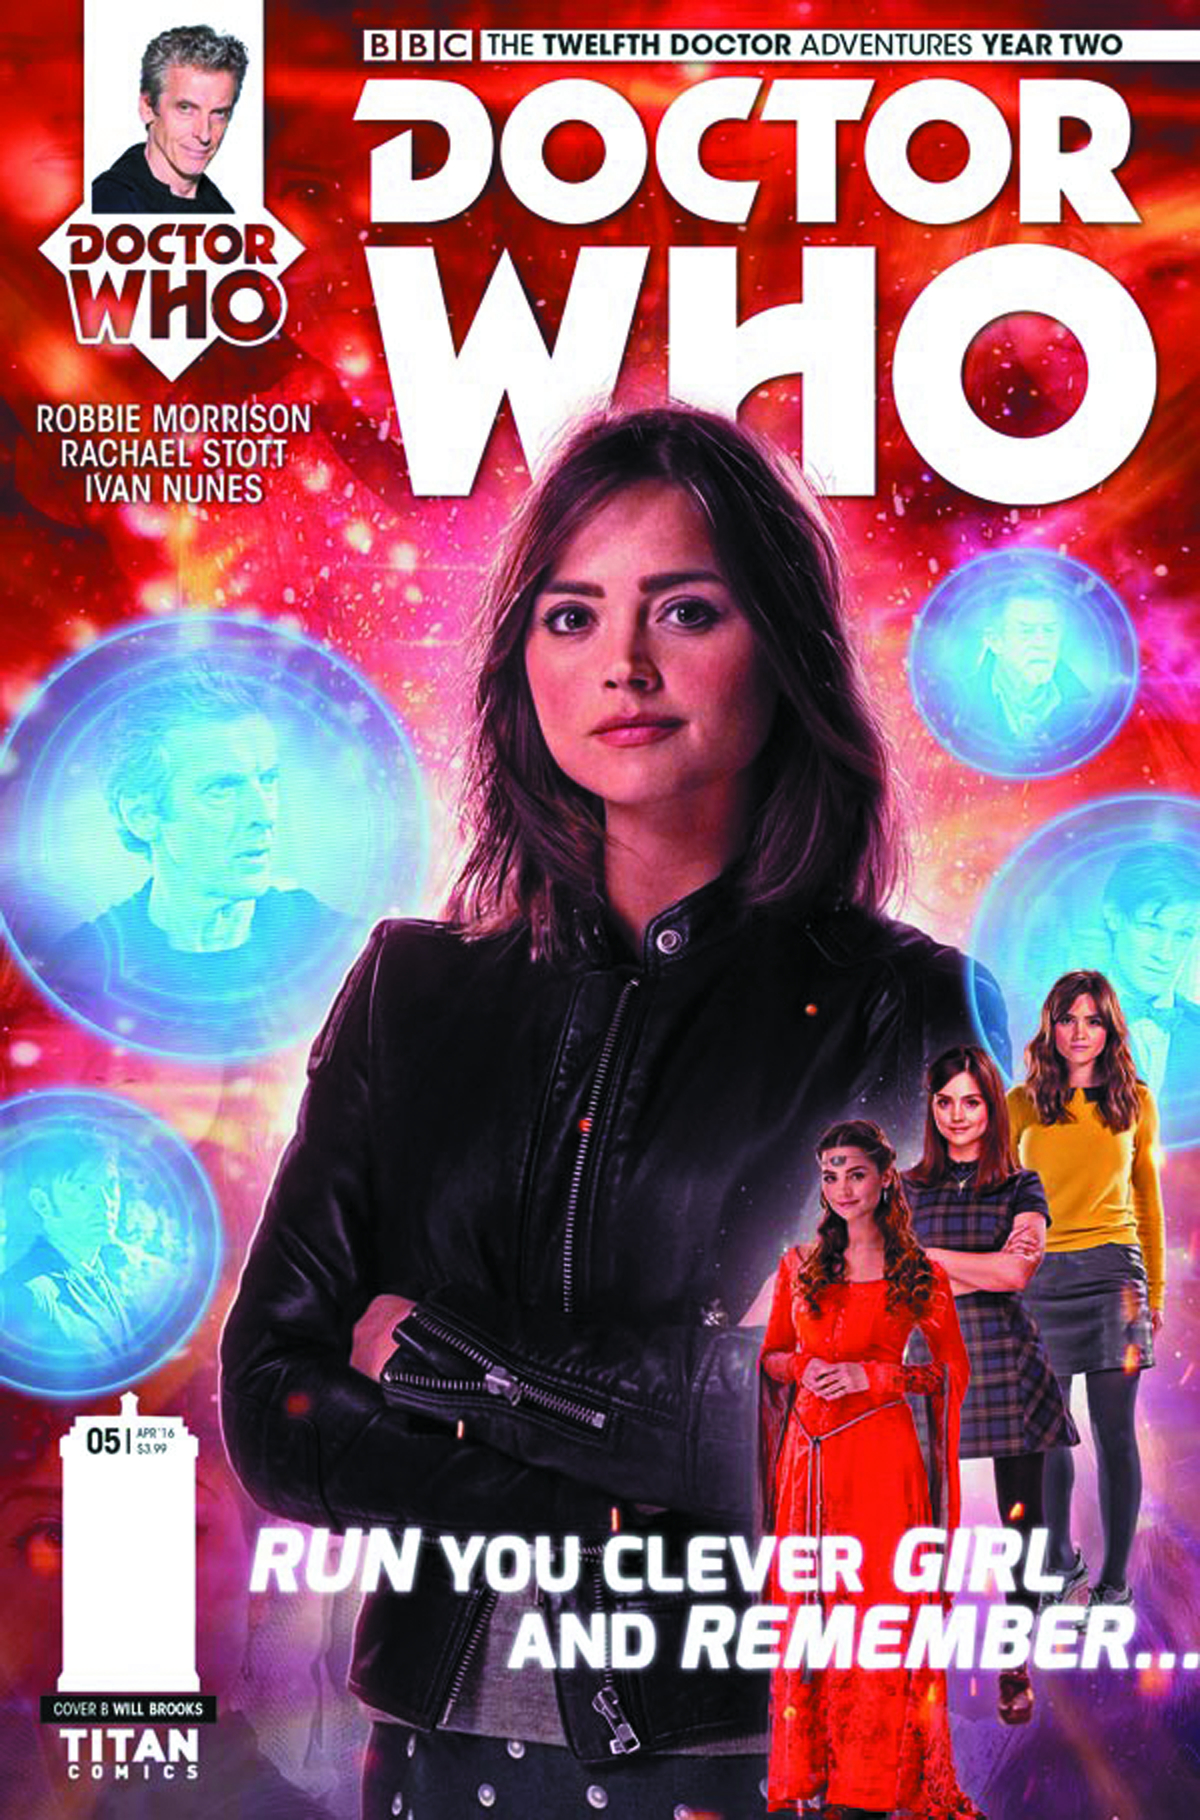 DOCTOR WHO 12TH YEAR TWO #5 CVR B PHOTO